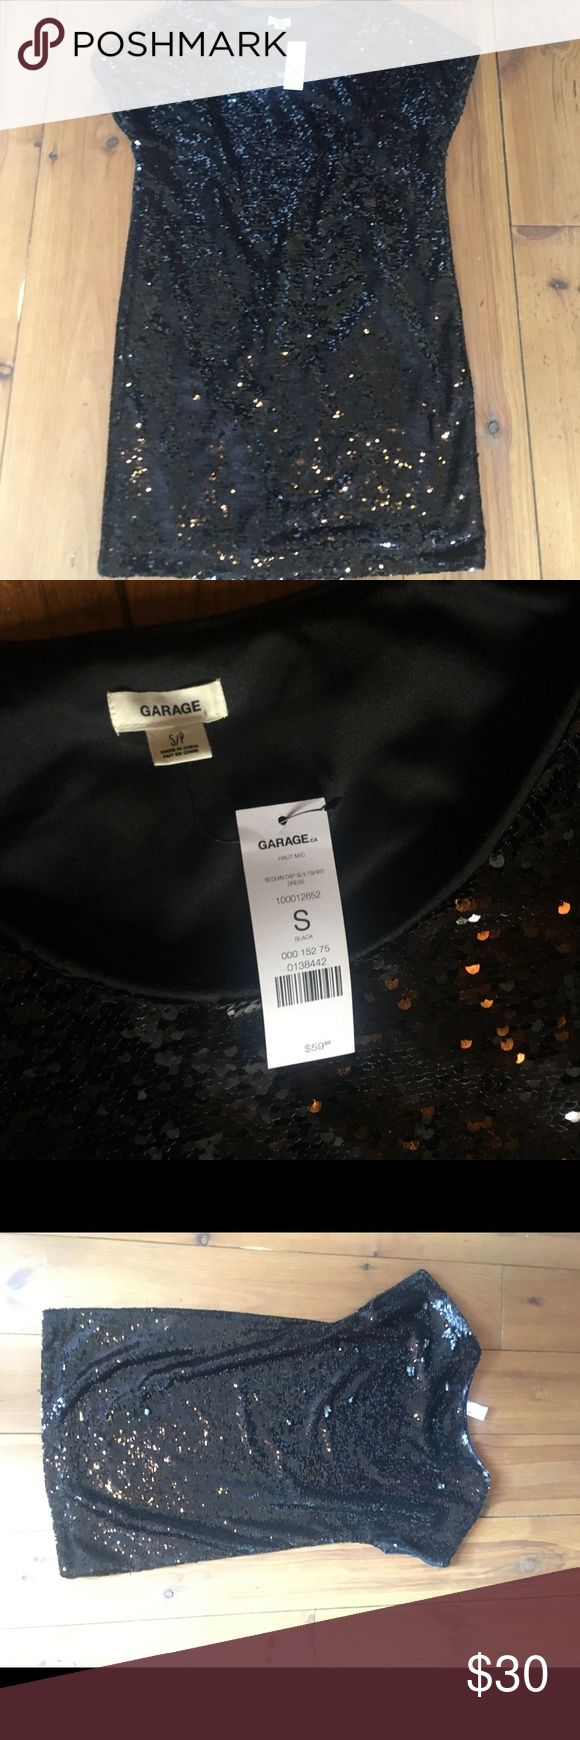 Black sequin dress Black sequin dress in GREAT condition! So perfect for the upcoming holiday season, it is not too flashy!!  💥💥💥💥 NEVER WORN NWT  Looking to get rid of this dress because I have zero use for it, I know someone else would wear and love it more!   Comment below with any questions! Garage Dresses